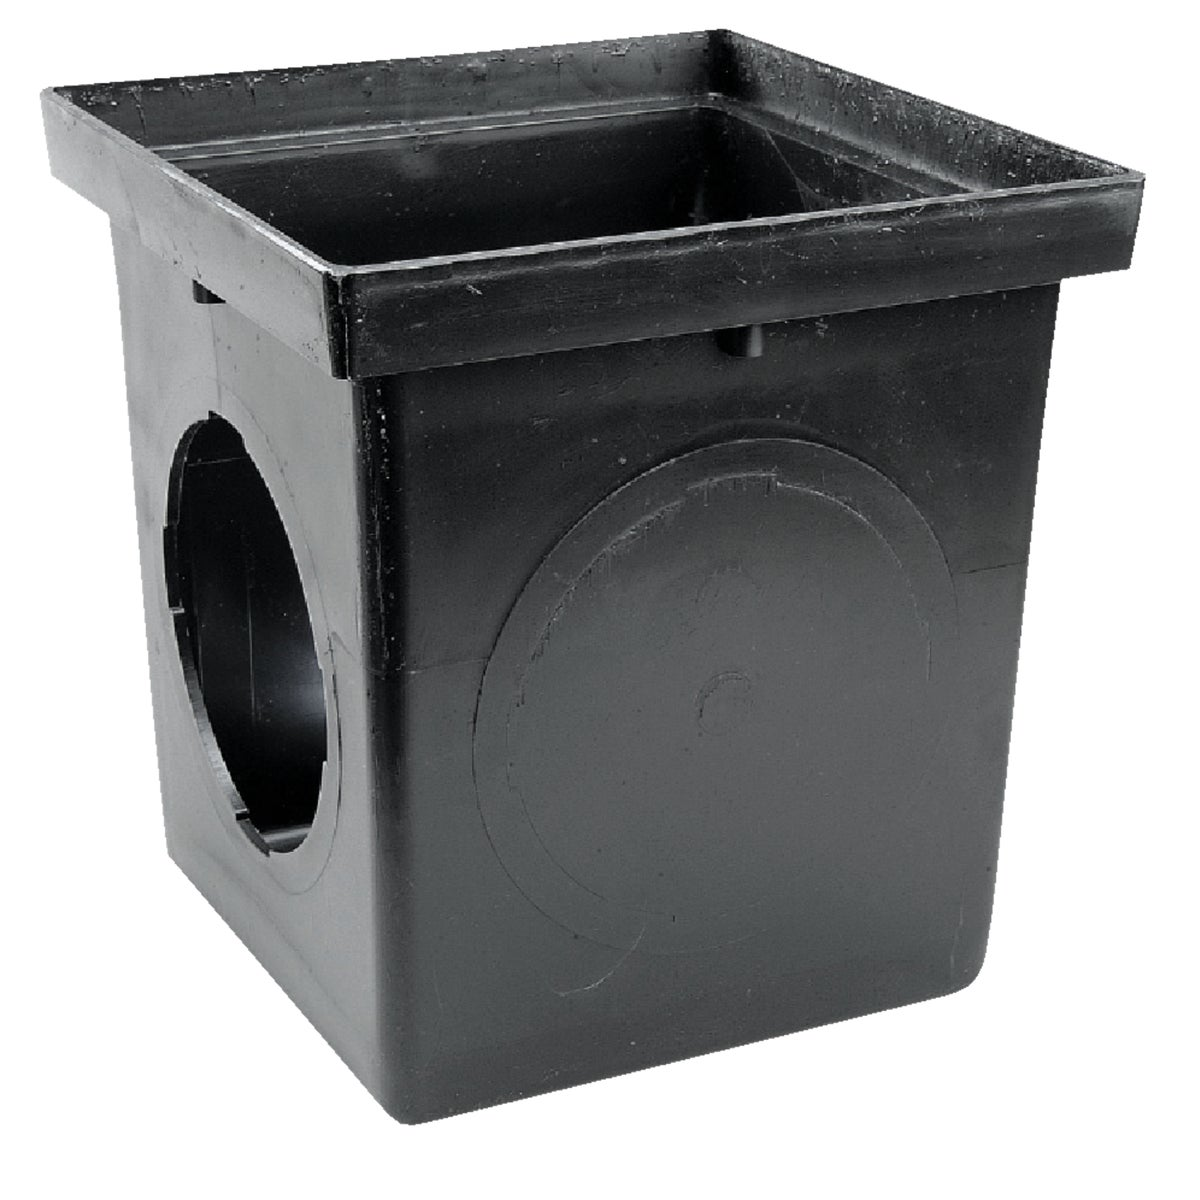 12X12 CATCH BASIN - 1200 by National Diversified